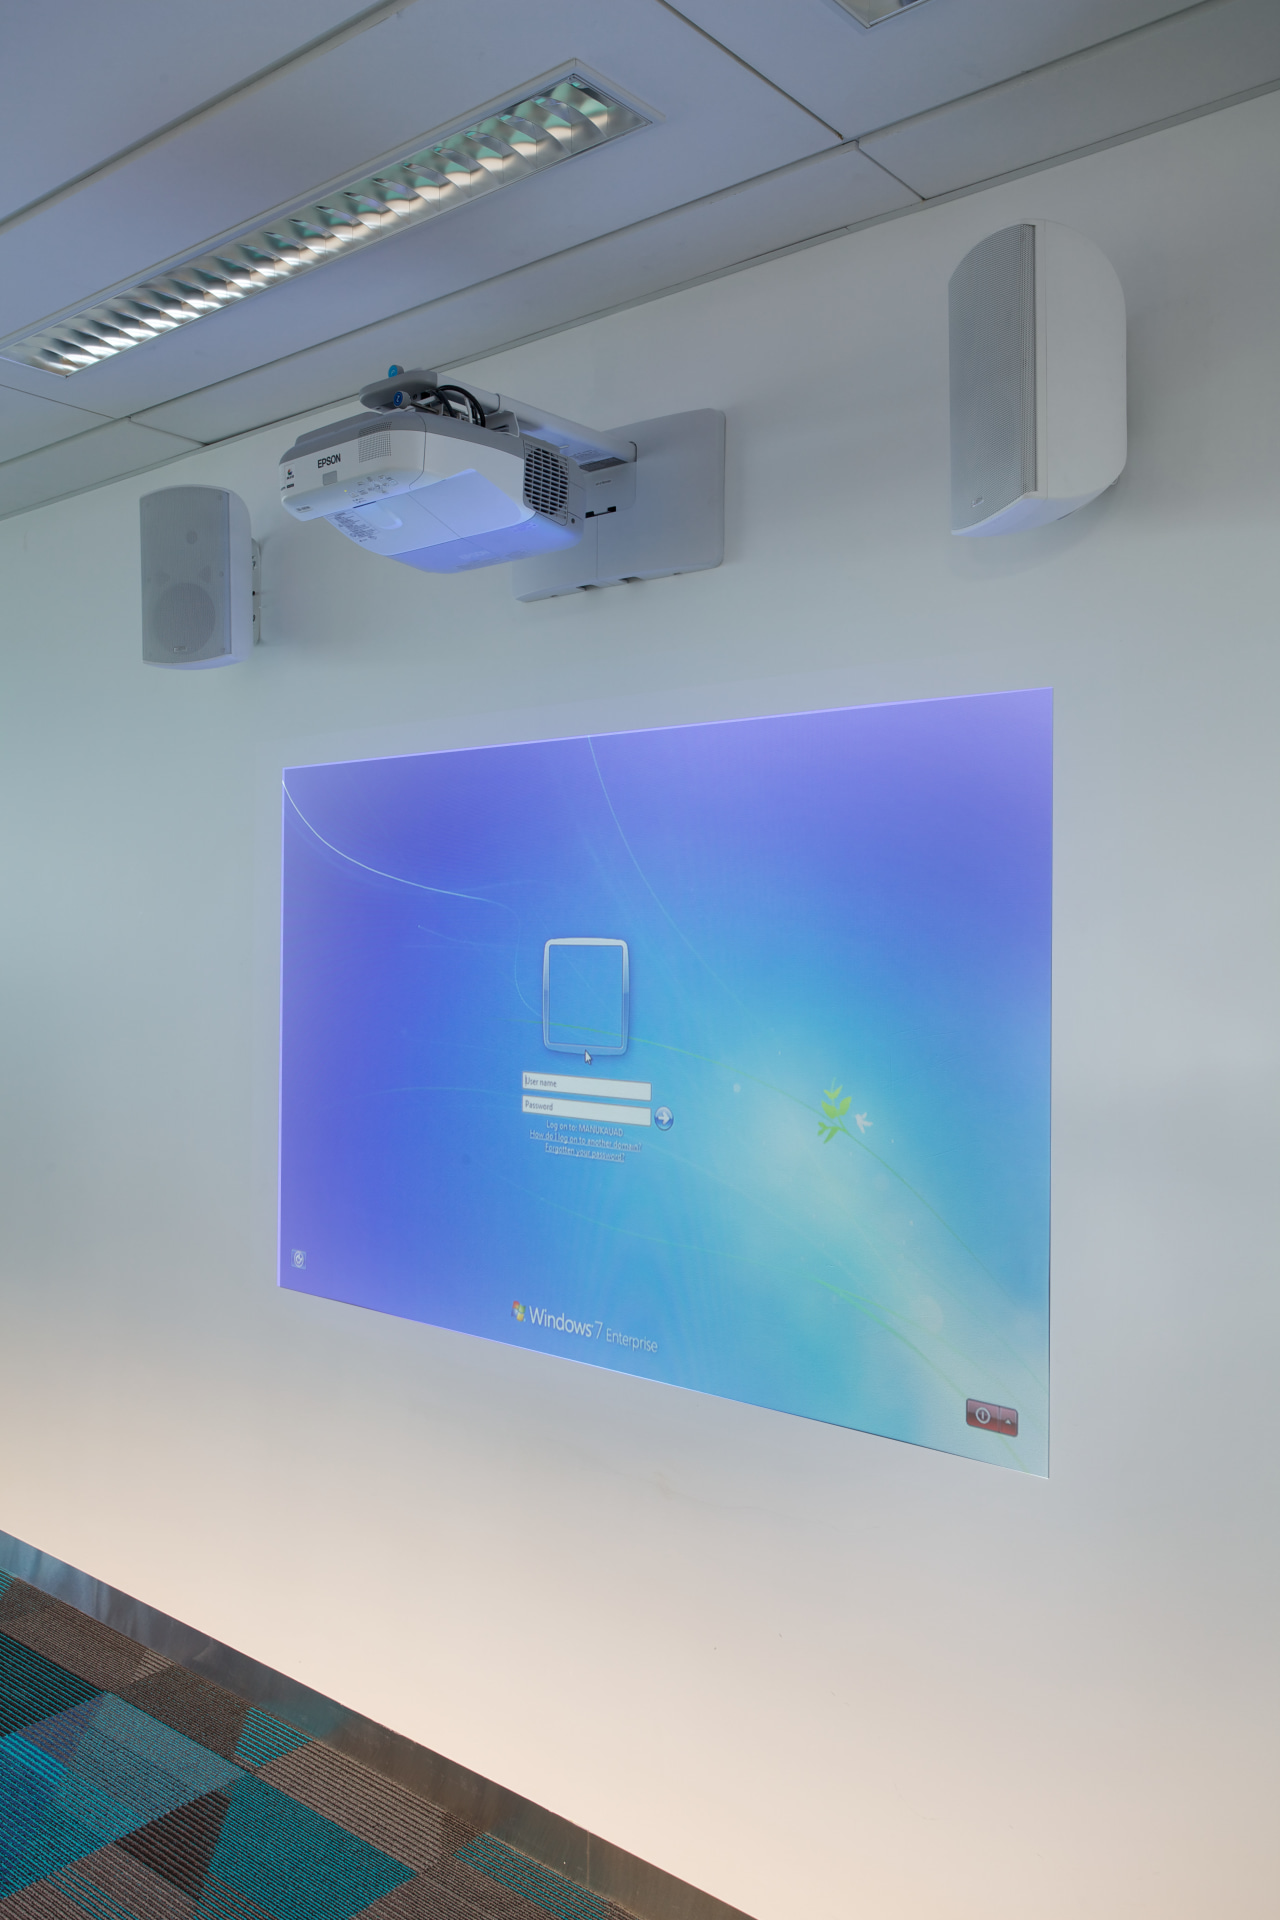 Advanced Ultra short-throw projector and touch screen interactive ceiling, daylighting, display device, glass, lighting, product design, sky, technology, gray